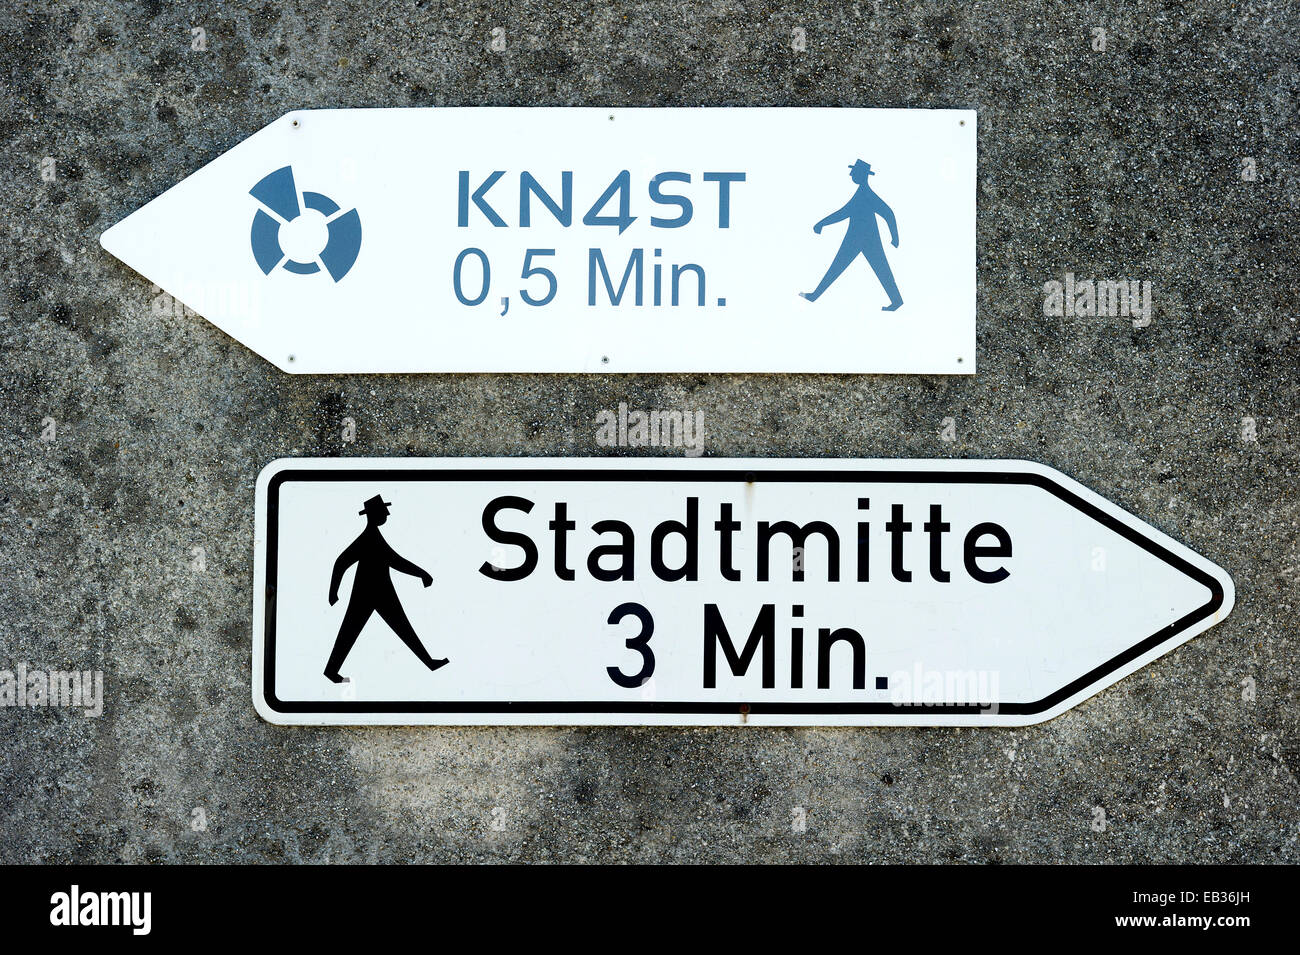 Signs, 'Knast' and 'Stadtmitte', German for 'Jail' and 'City centre', historic center, - Stock Image